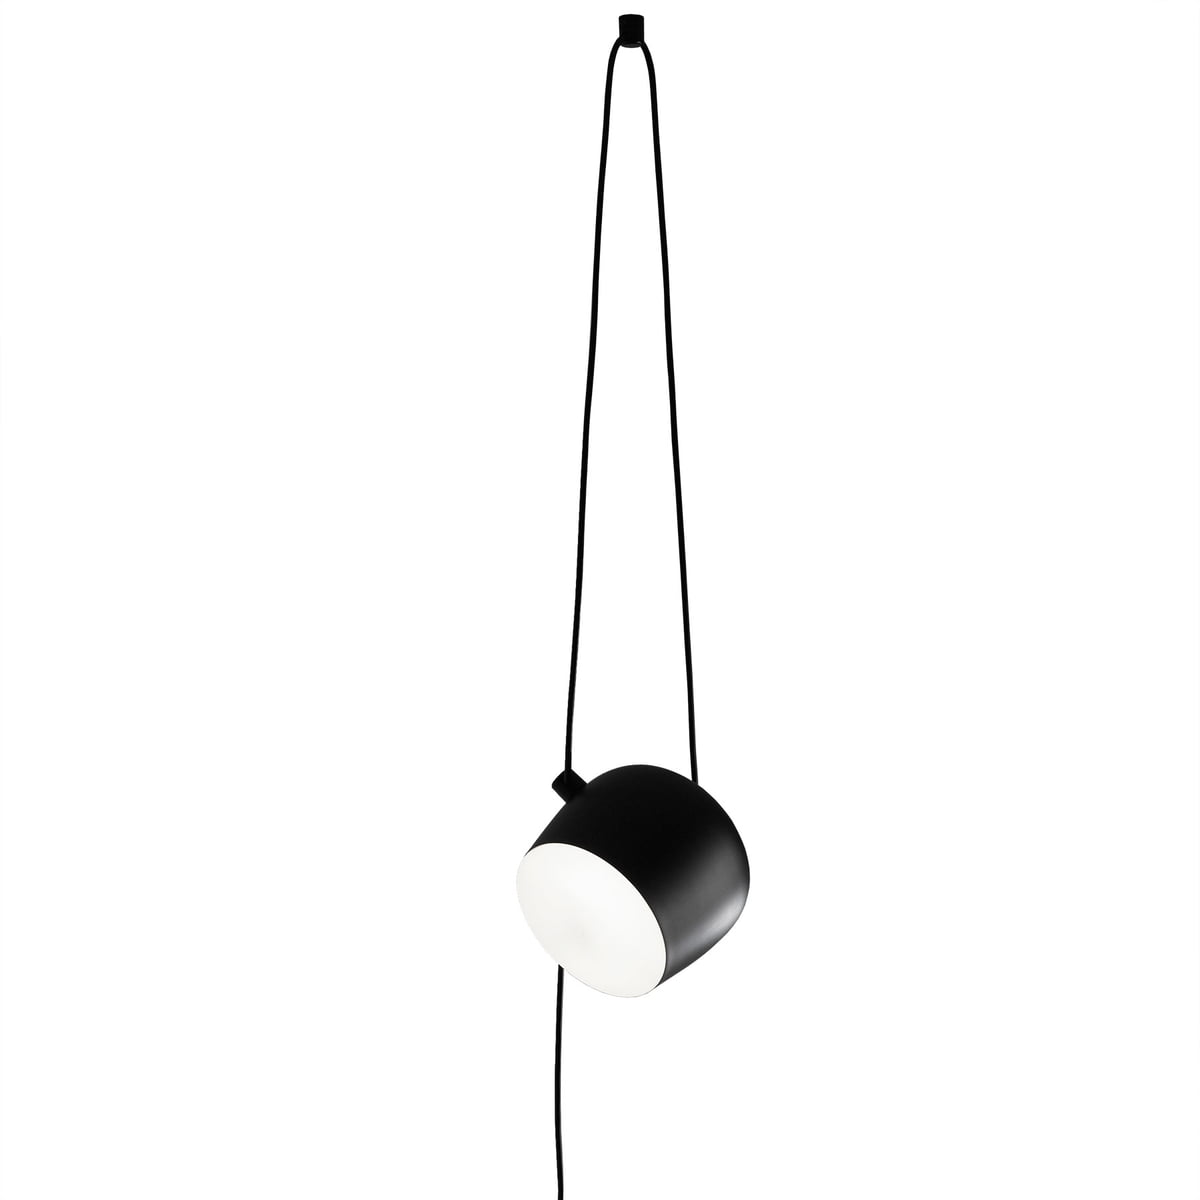 Flos Aim Led Cable Plug By On Pinterest Electrical Wiring Light Fixtures And Extension Cords Pendant Lamp With Black